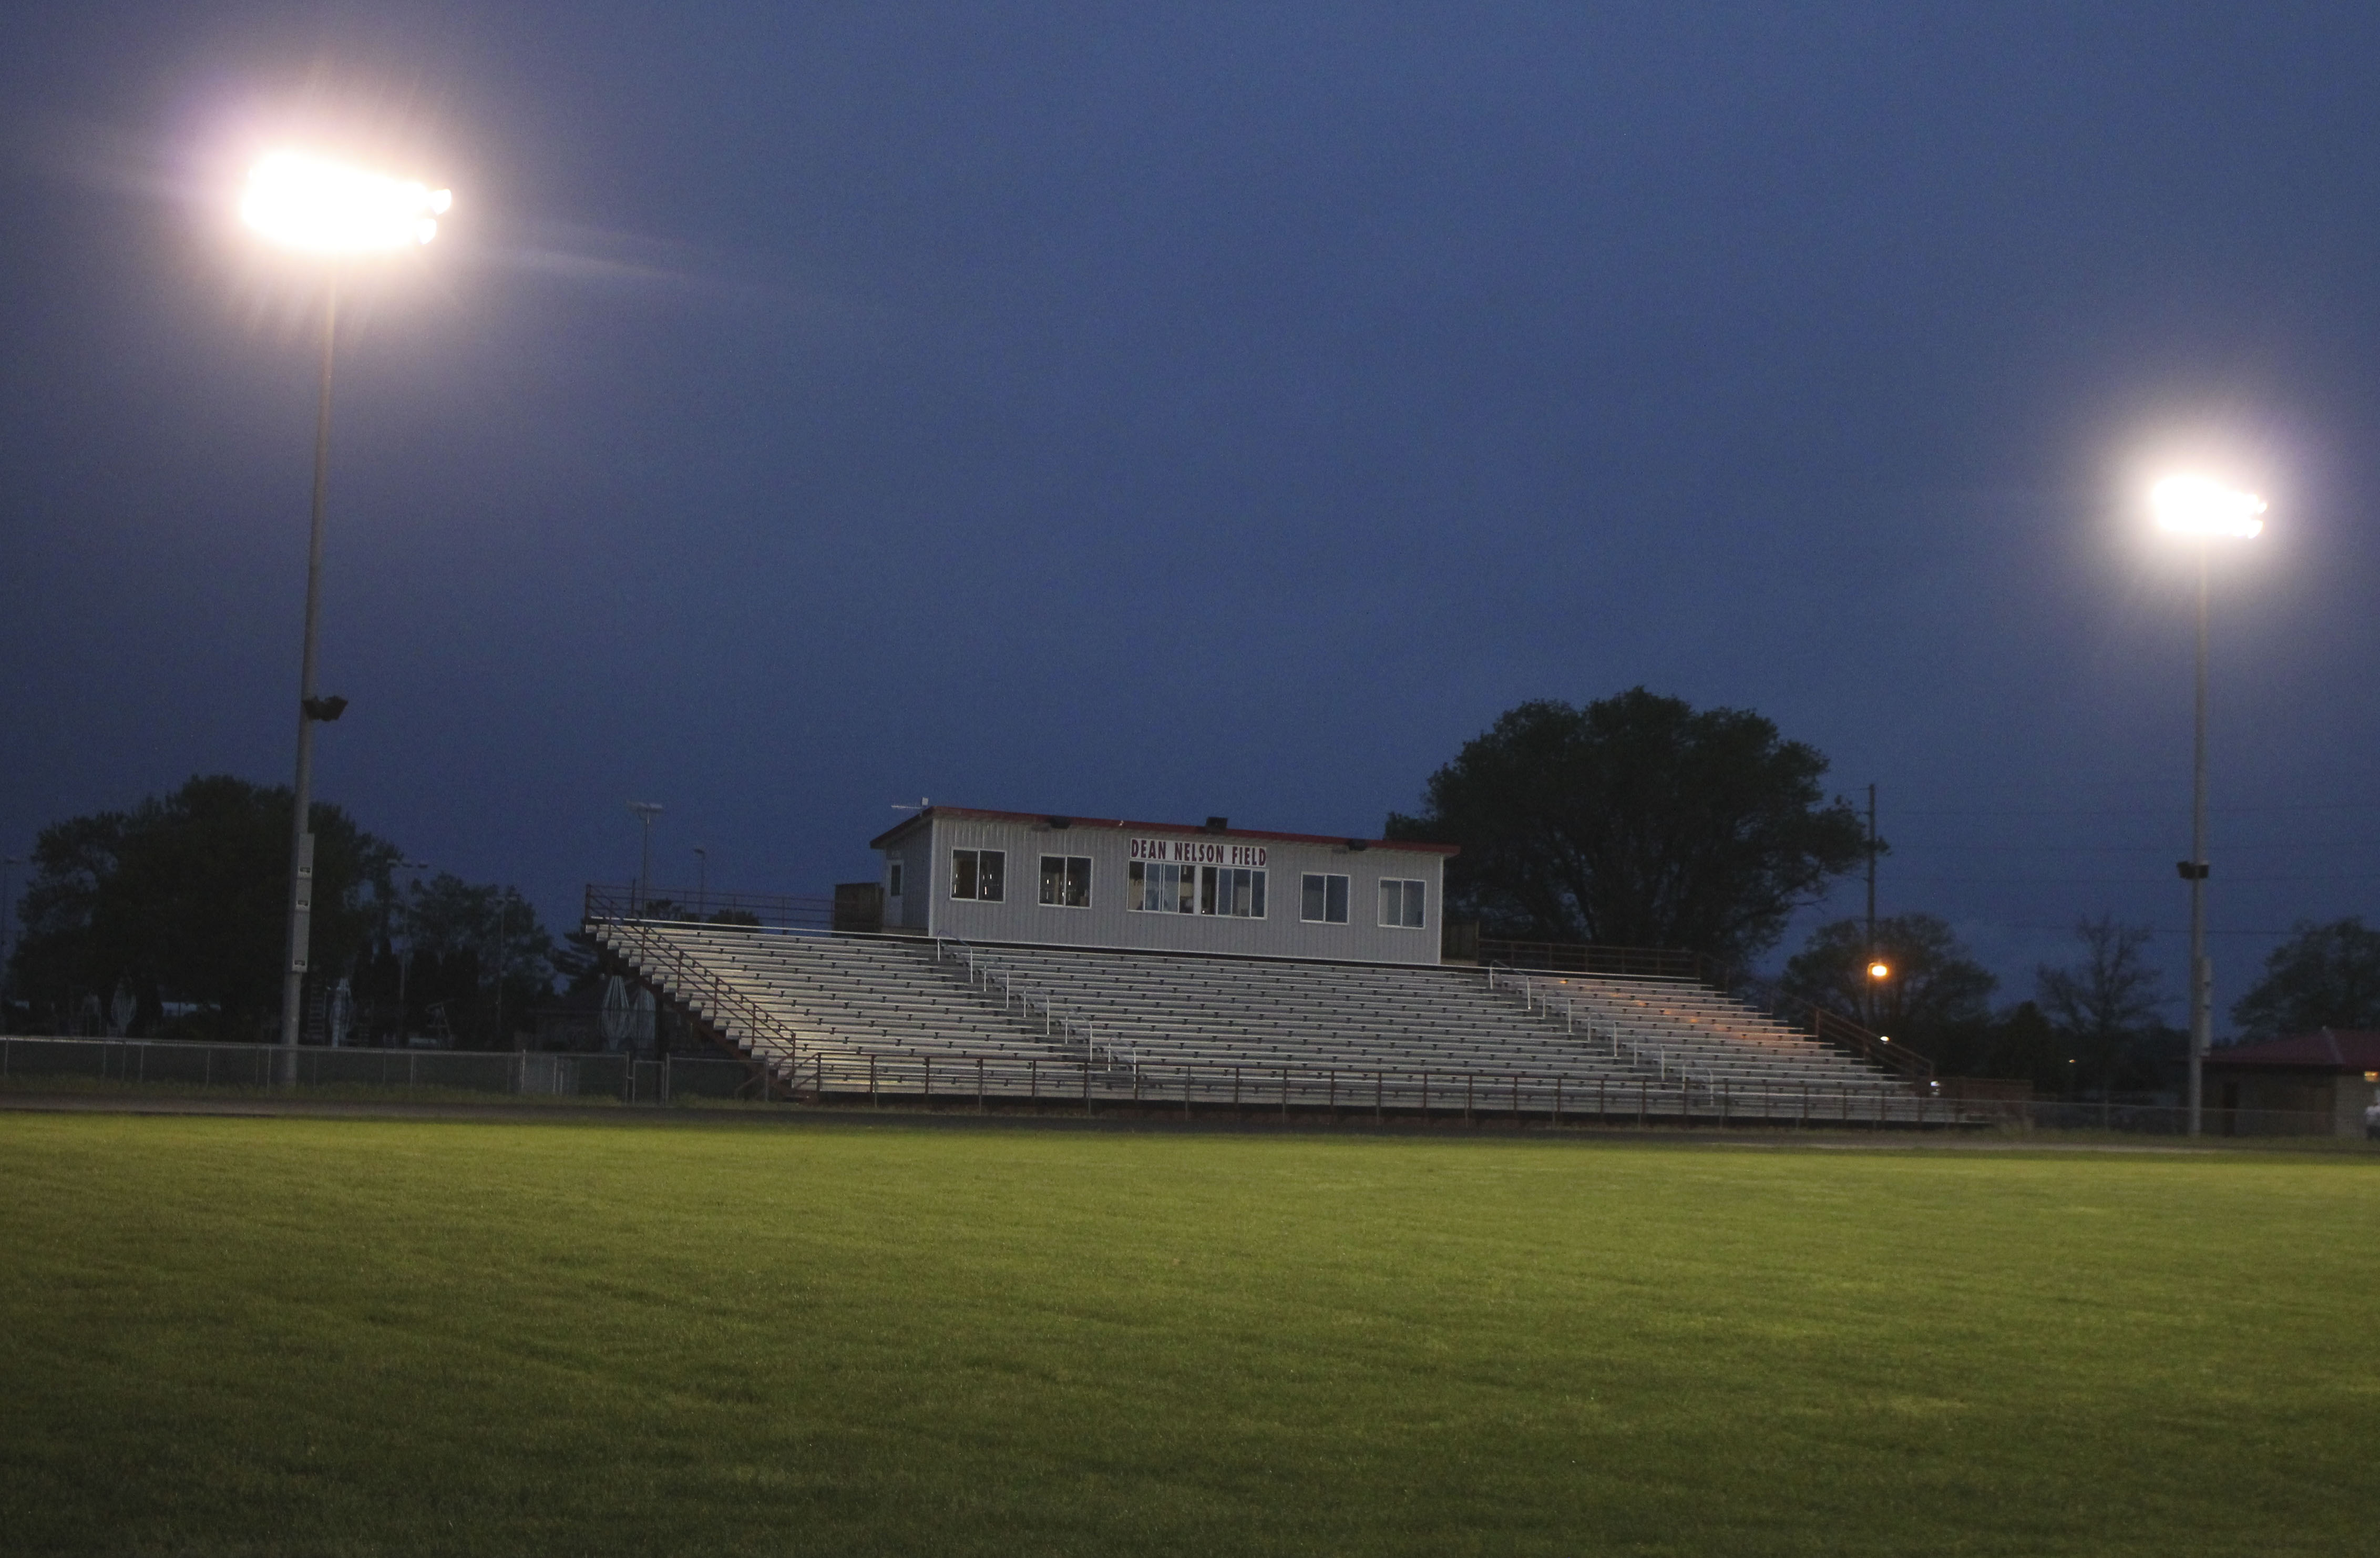 The lights shine at Dean Nelson Field on the evening of May 24 to honor the Monticello High School Class of 2020. The lights went on at 8:20 p.m. (20:20 in military time), and remained on for 80 minutes – one for each graduating senior. (Photos by Pete Temple)